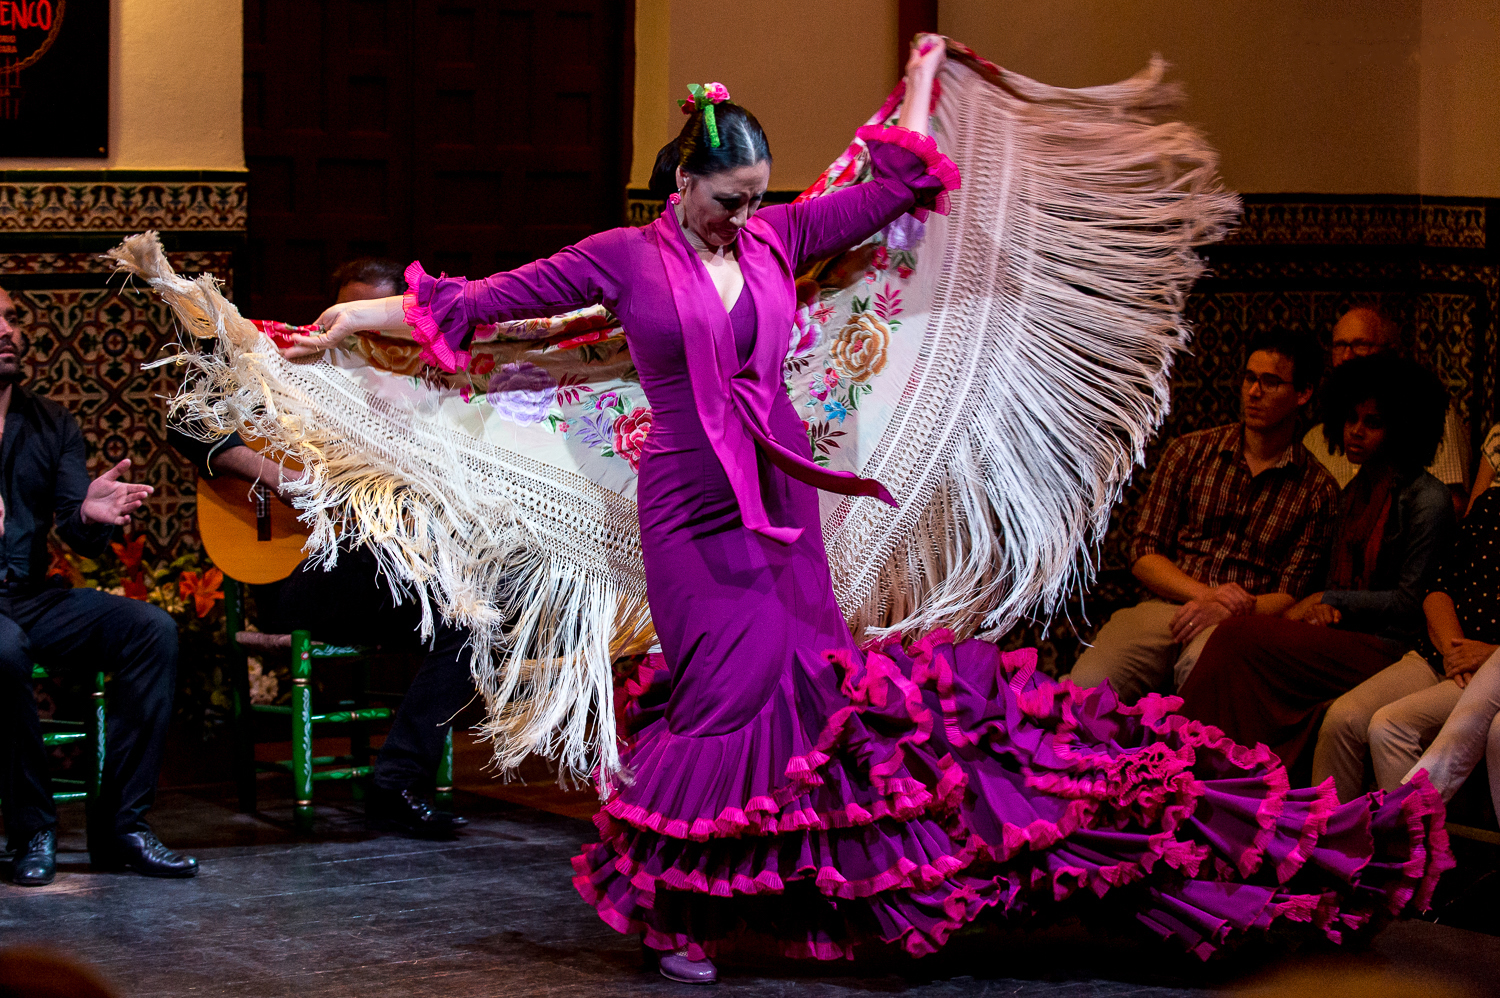 The Romance that is Flamenco